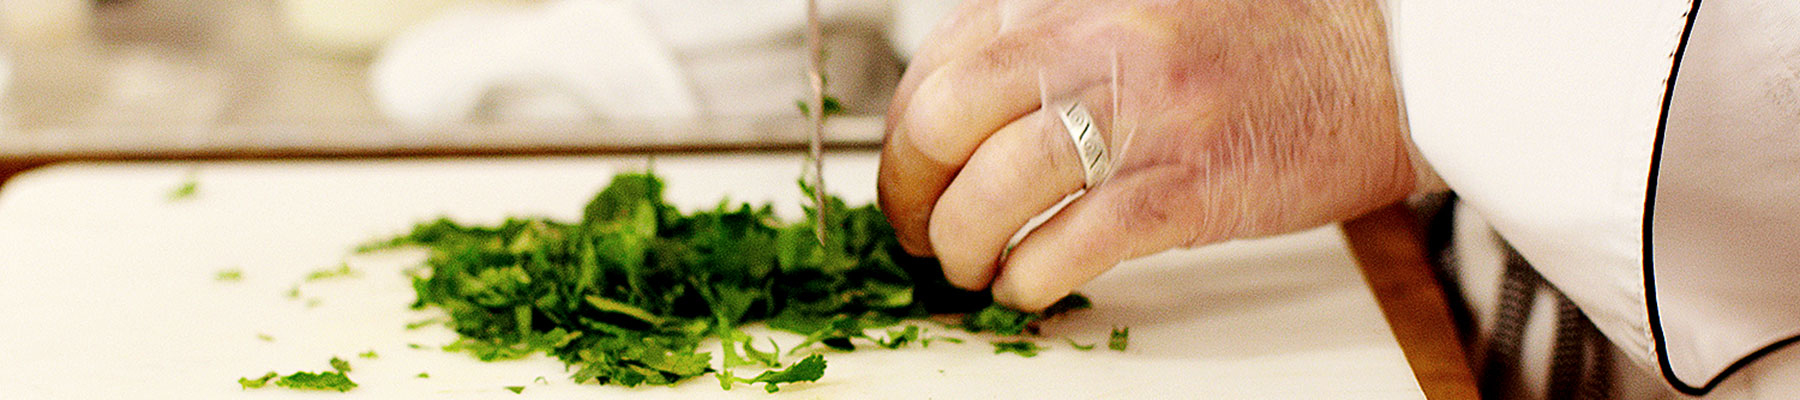 Close up of hands chopping cilantro